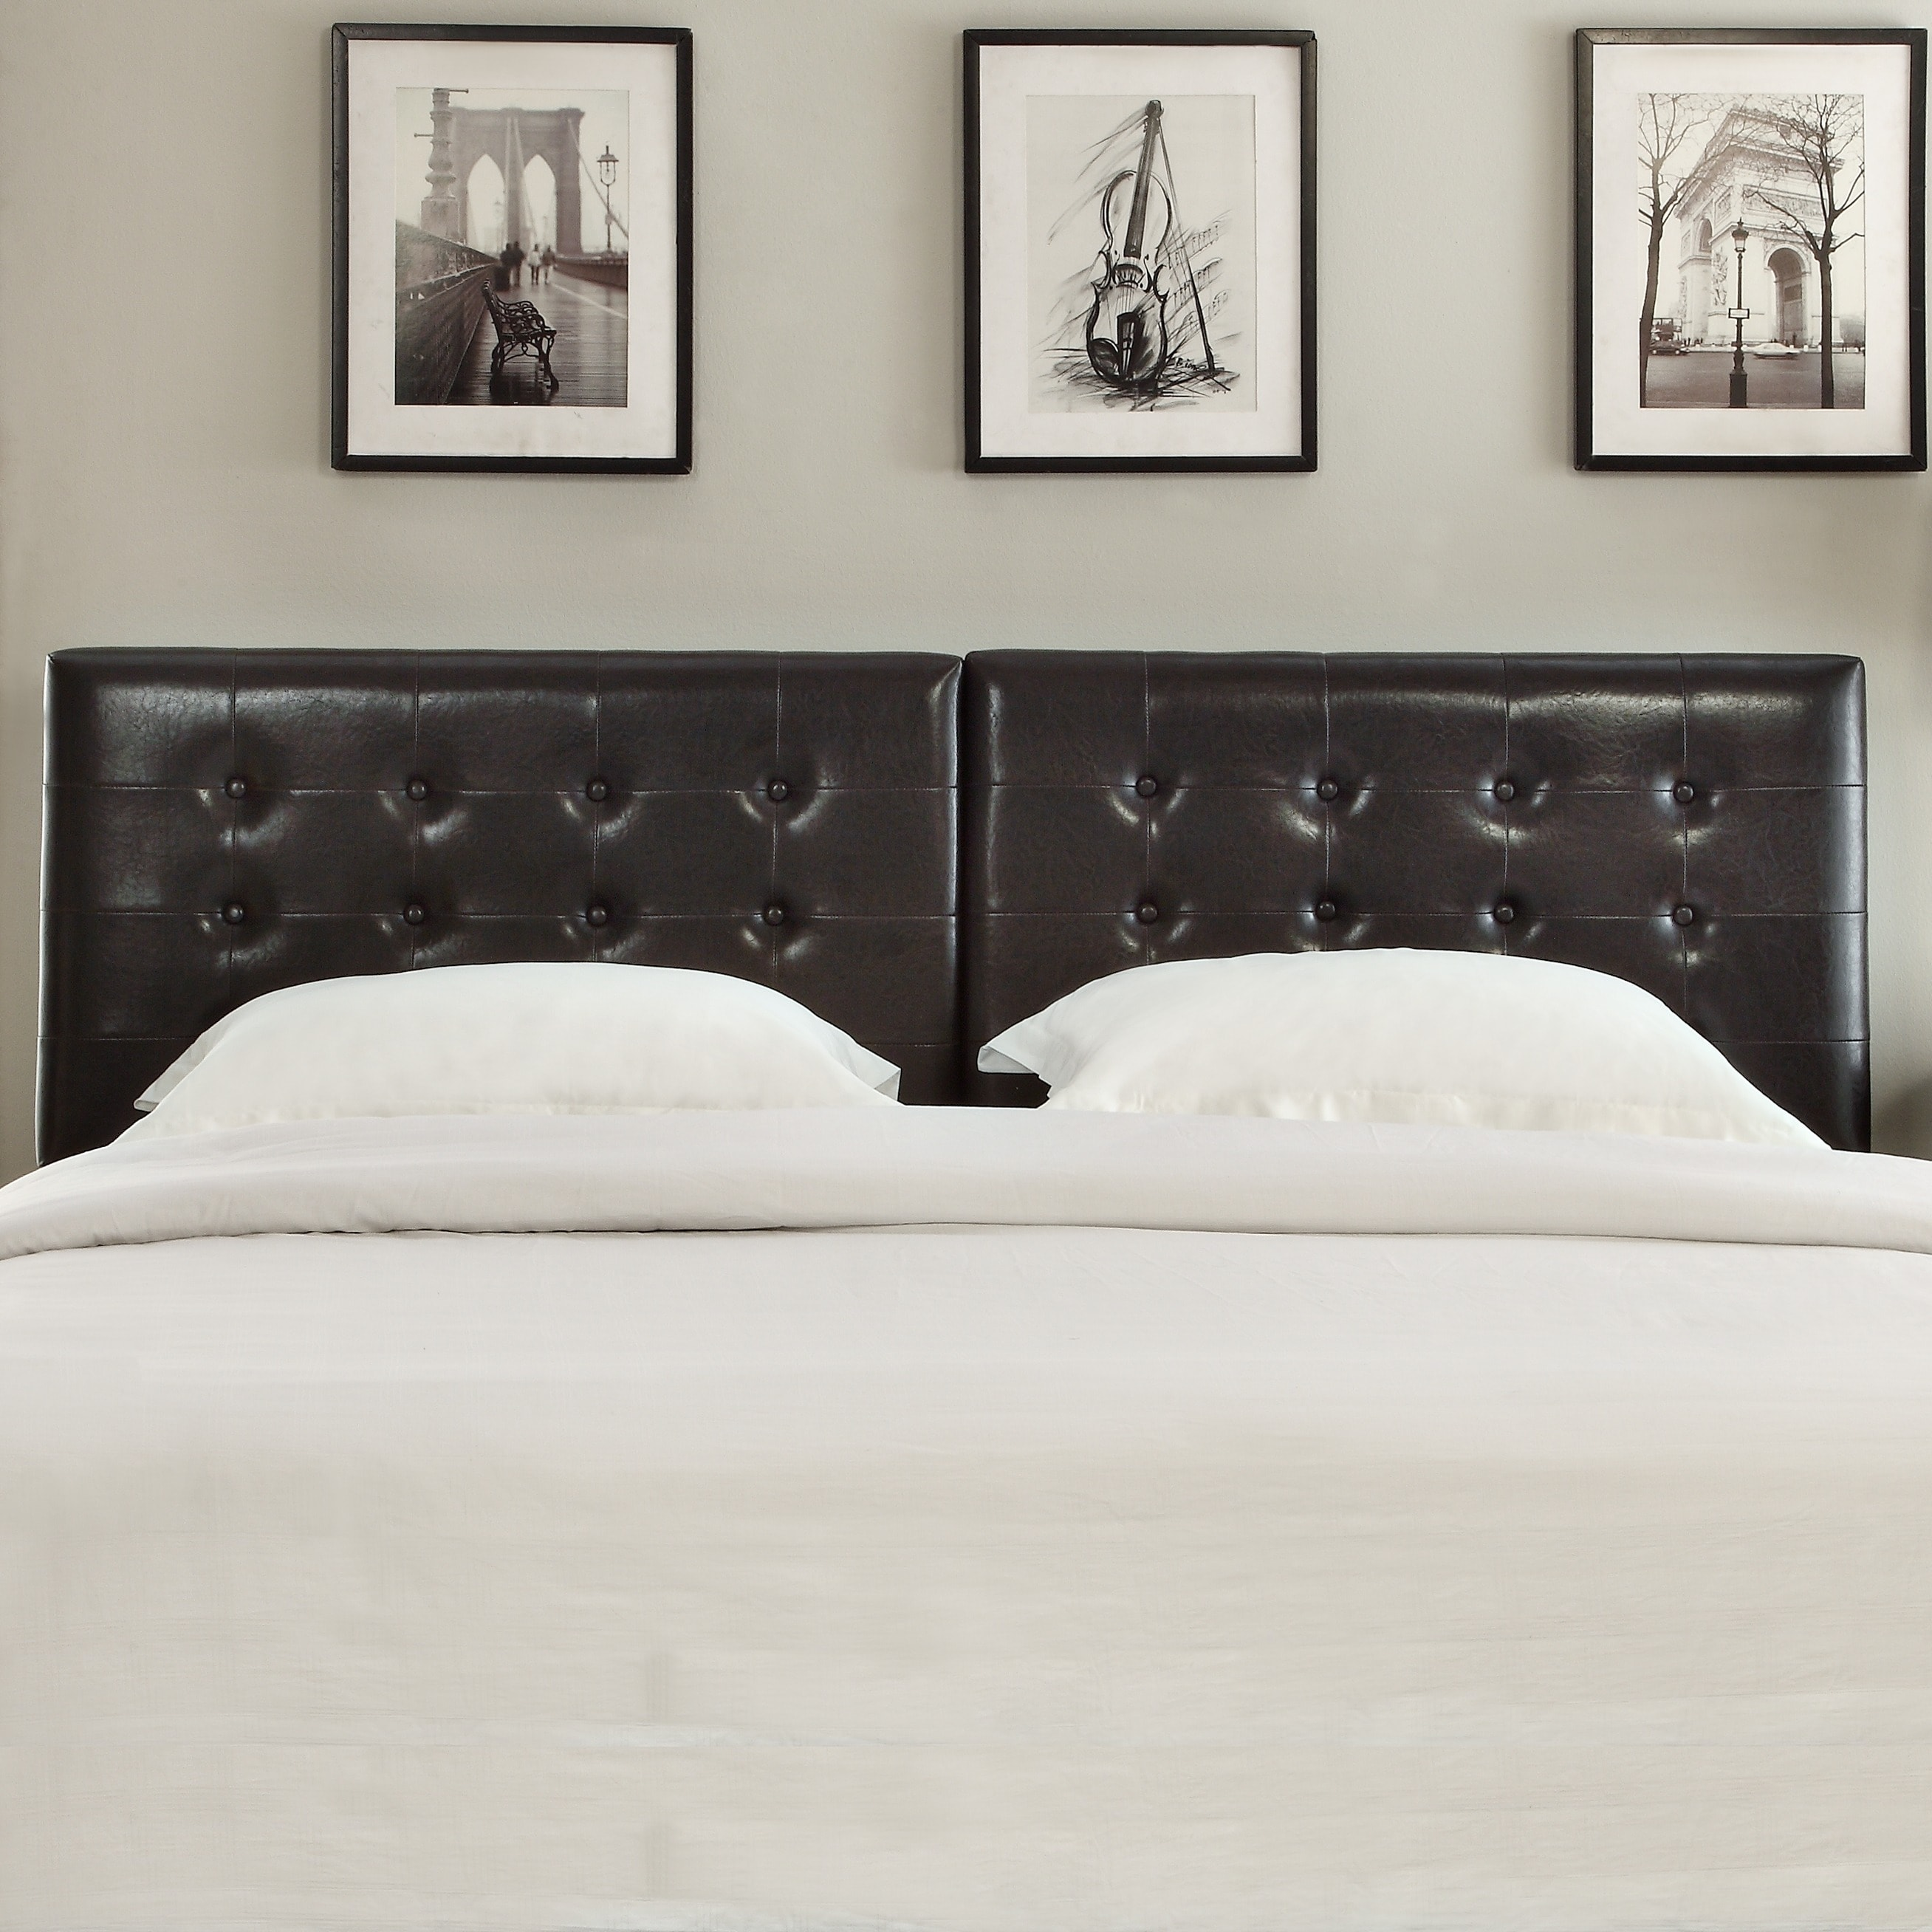 Domusindo Button Tufted King or Cal King Synthetic Leather Upholstery Headboard